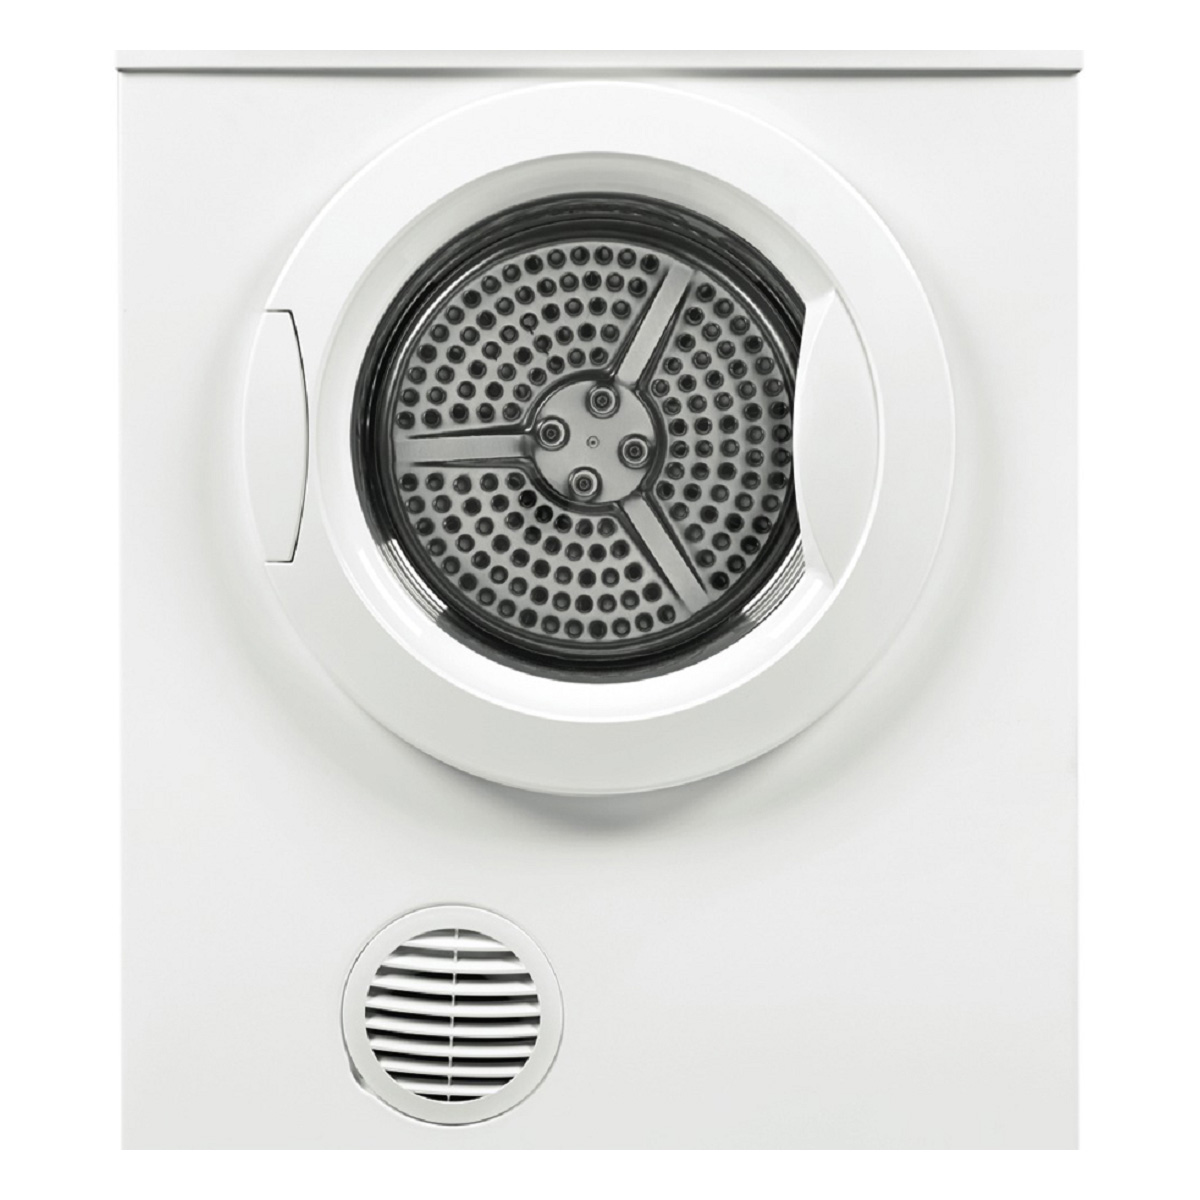 haier hdv60a1 6kg vented dryer review